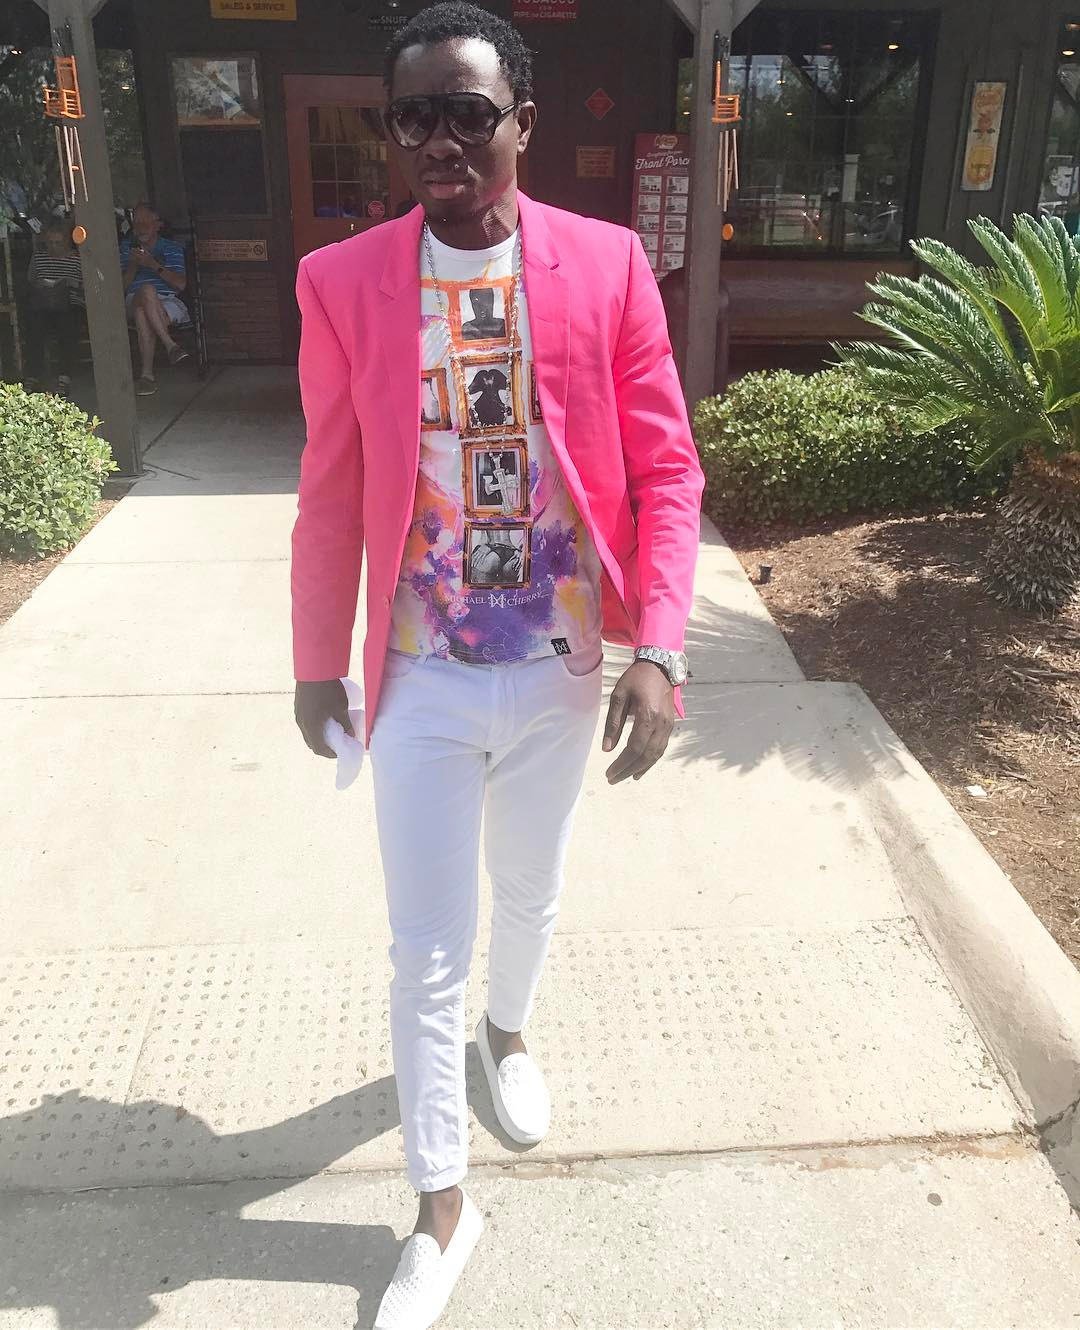 Michael Blackson Instagram username